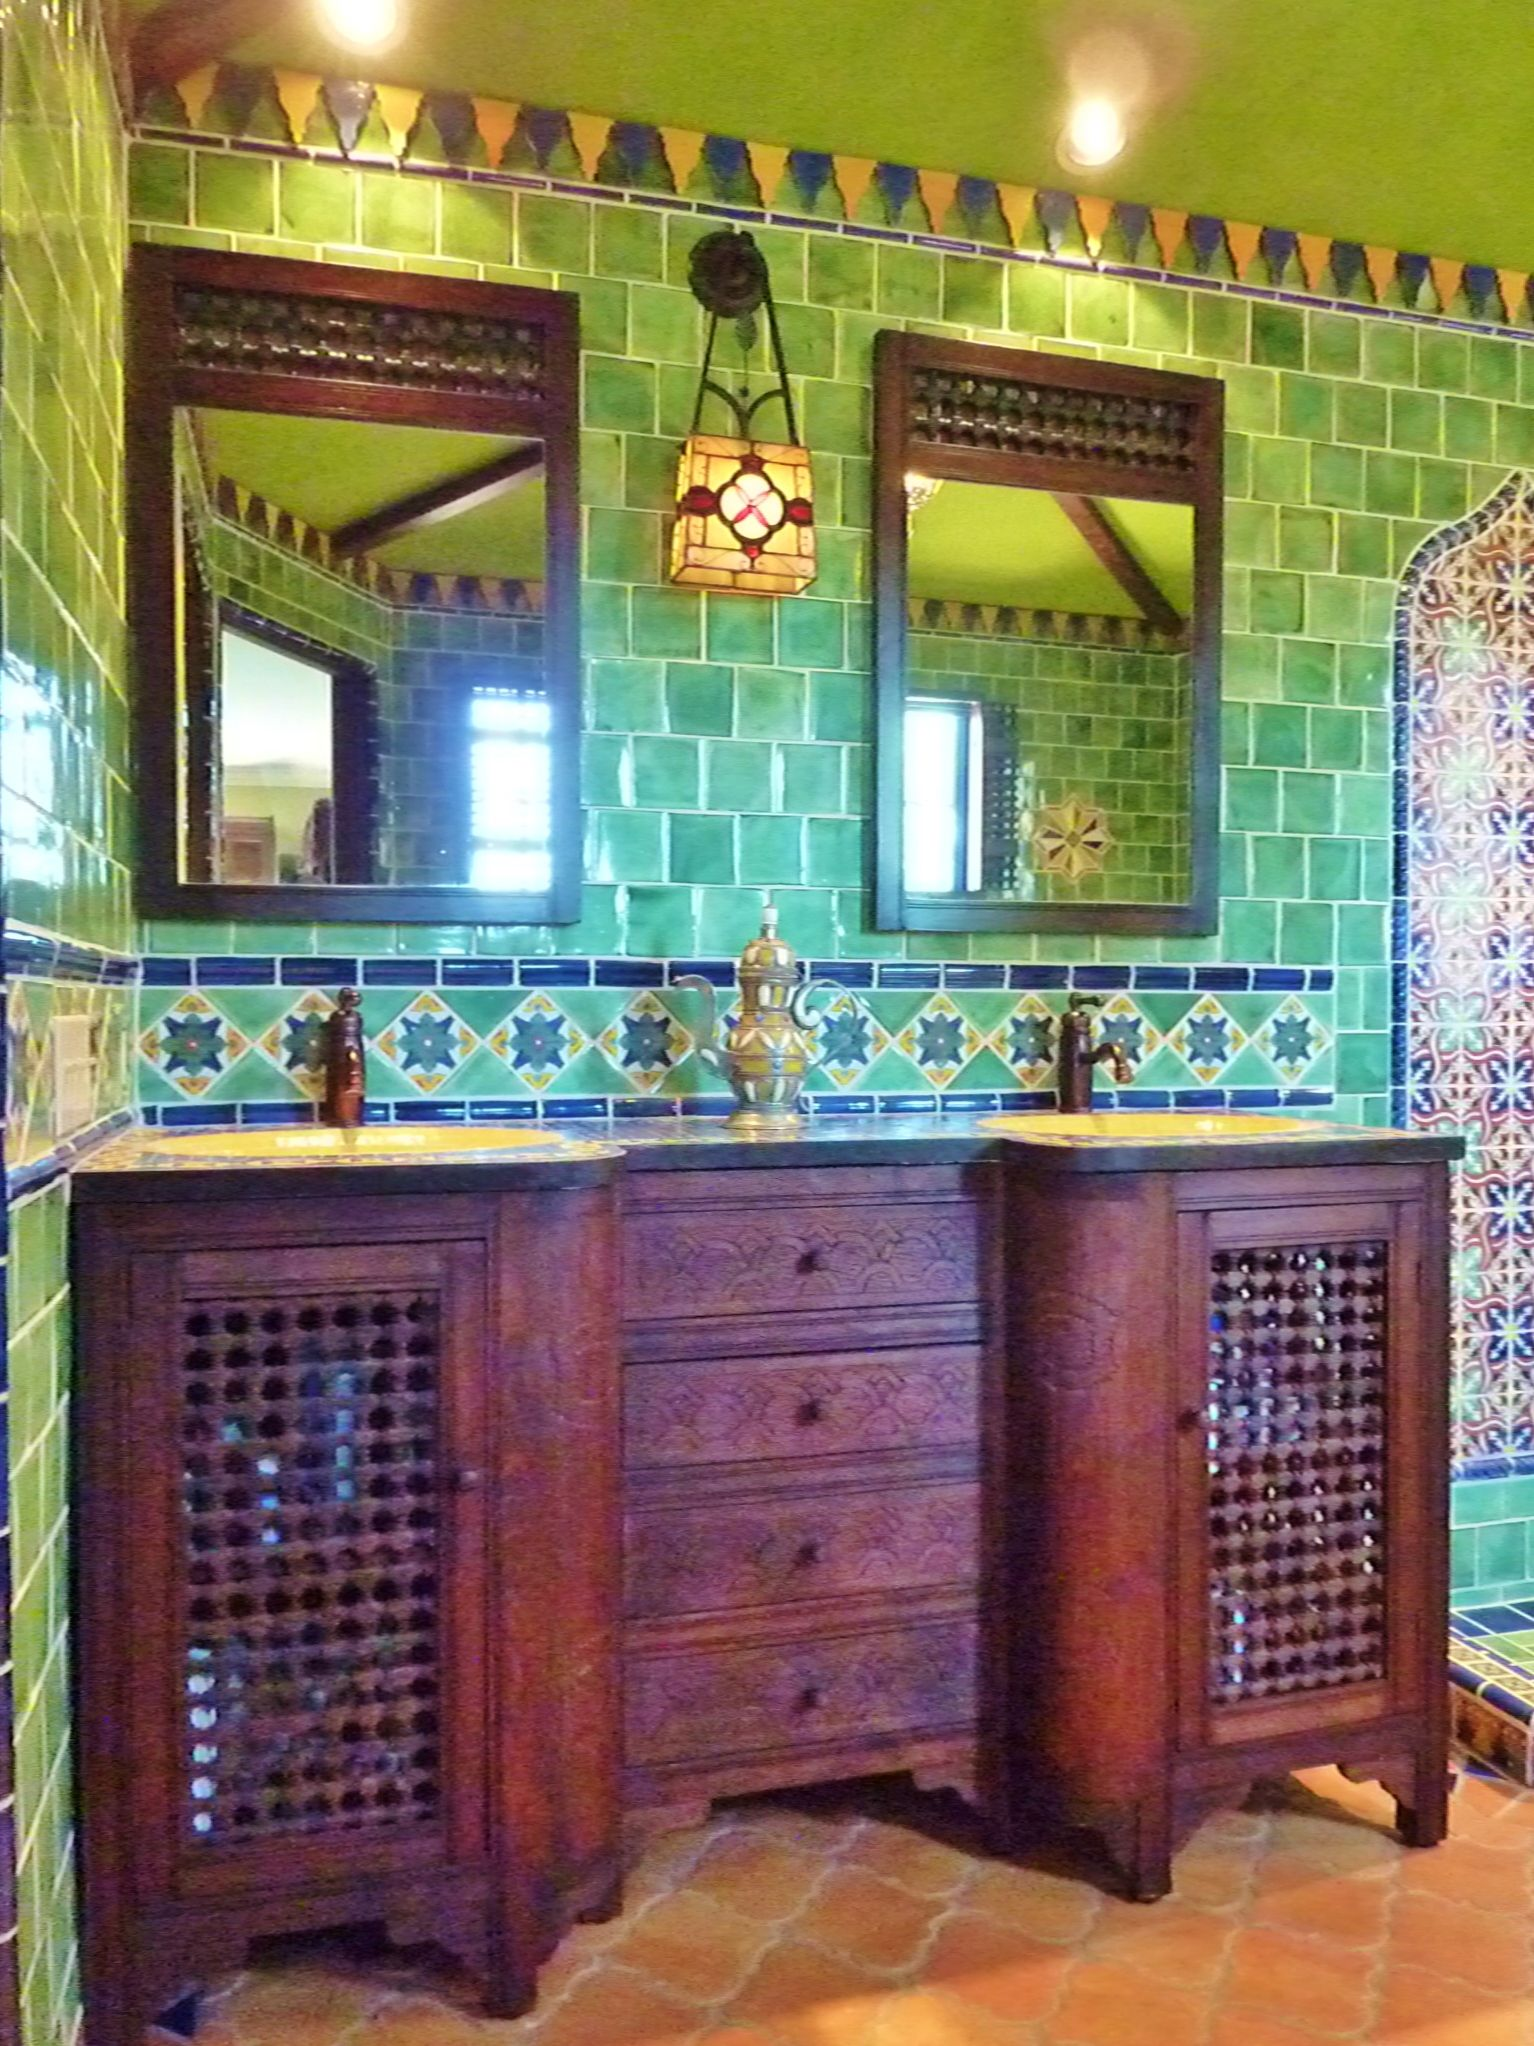 Moroccan Themed Bathroom Using Turkish, Moroccan And